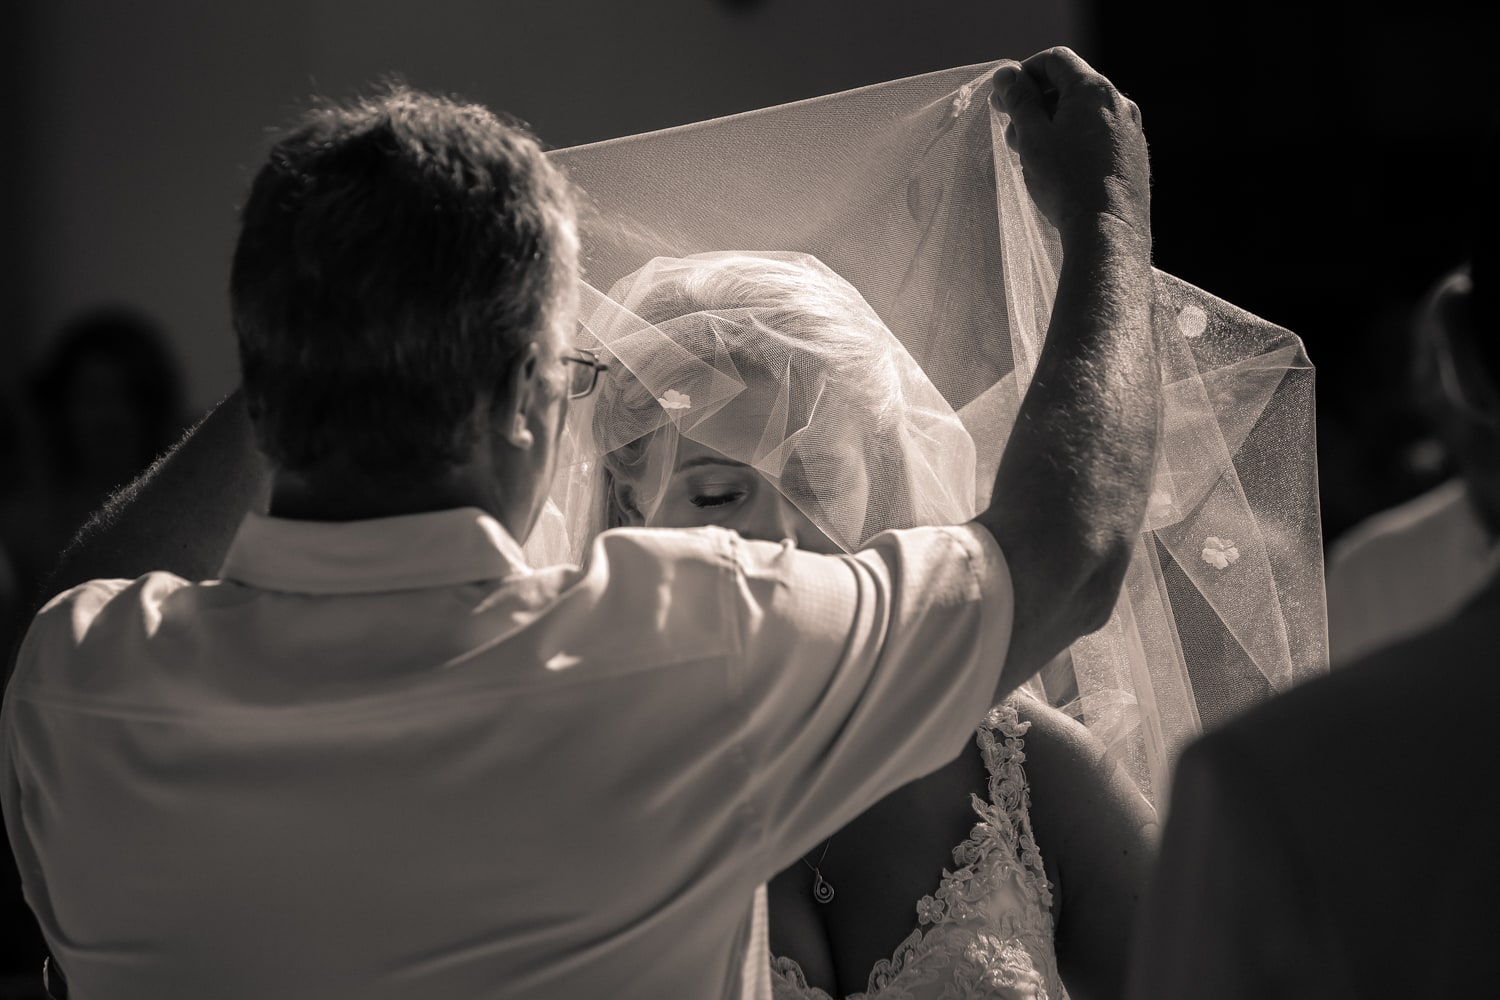 Father lifts veil from brides face after walking her to altar.